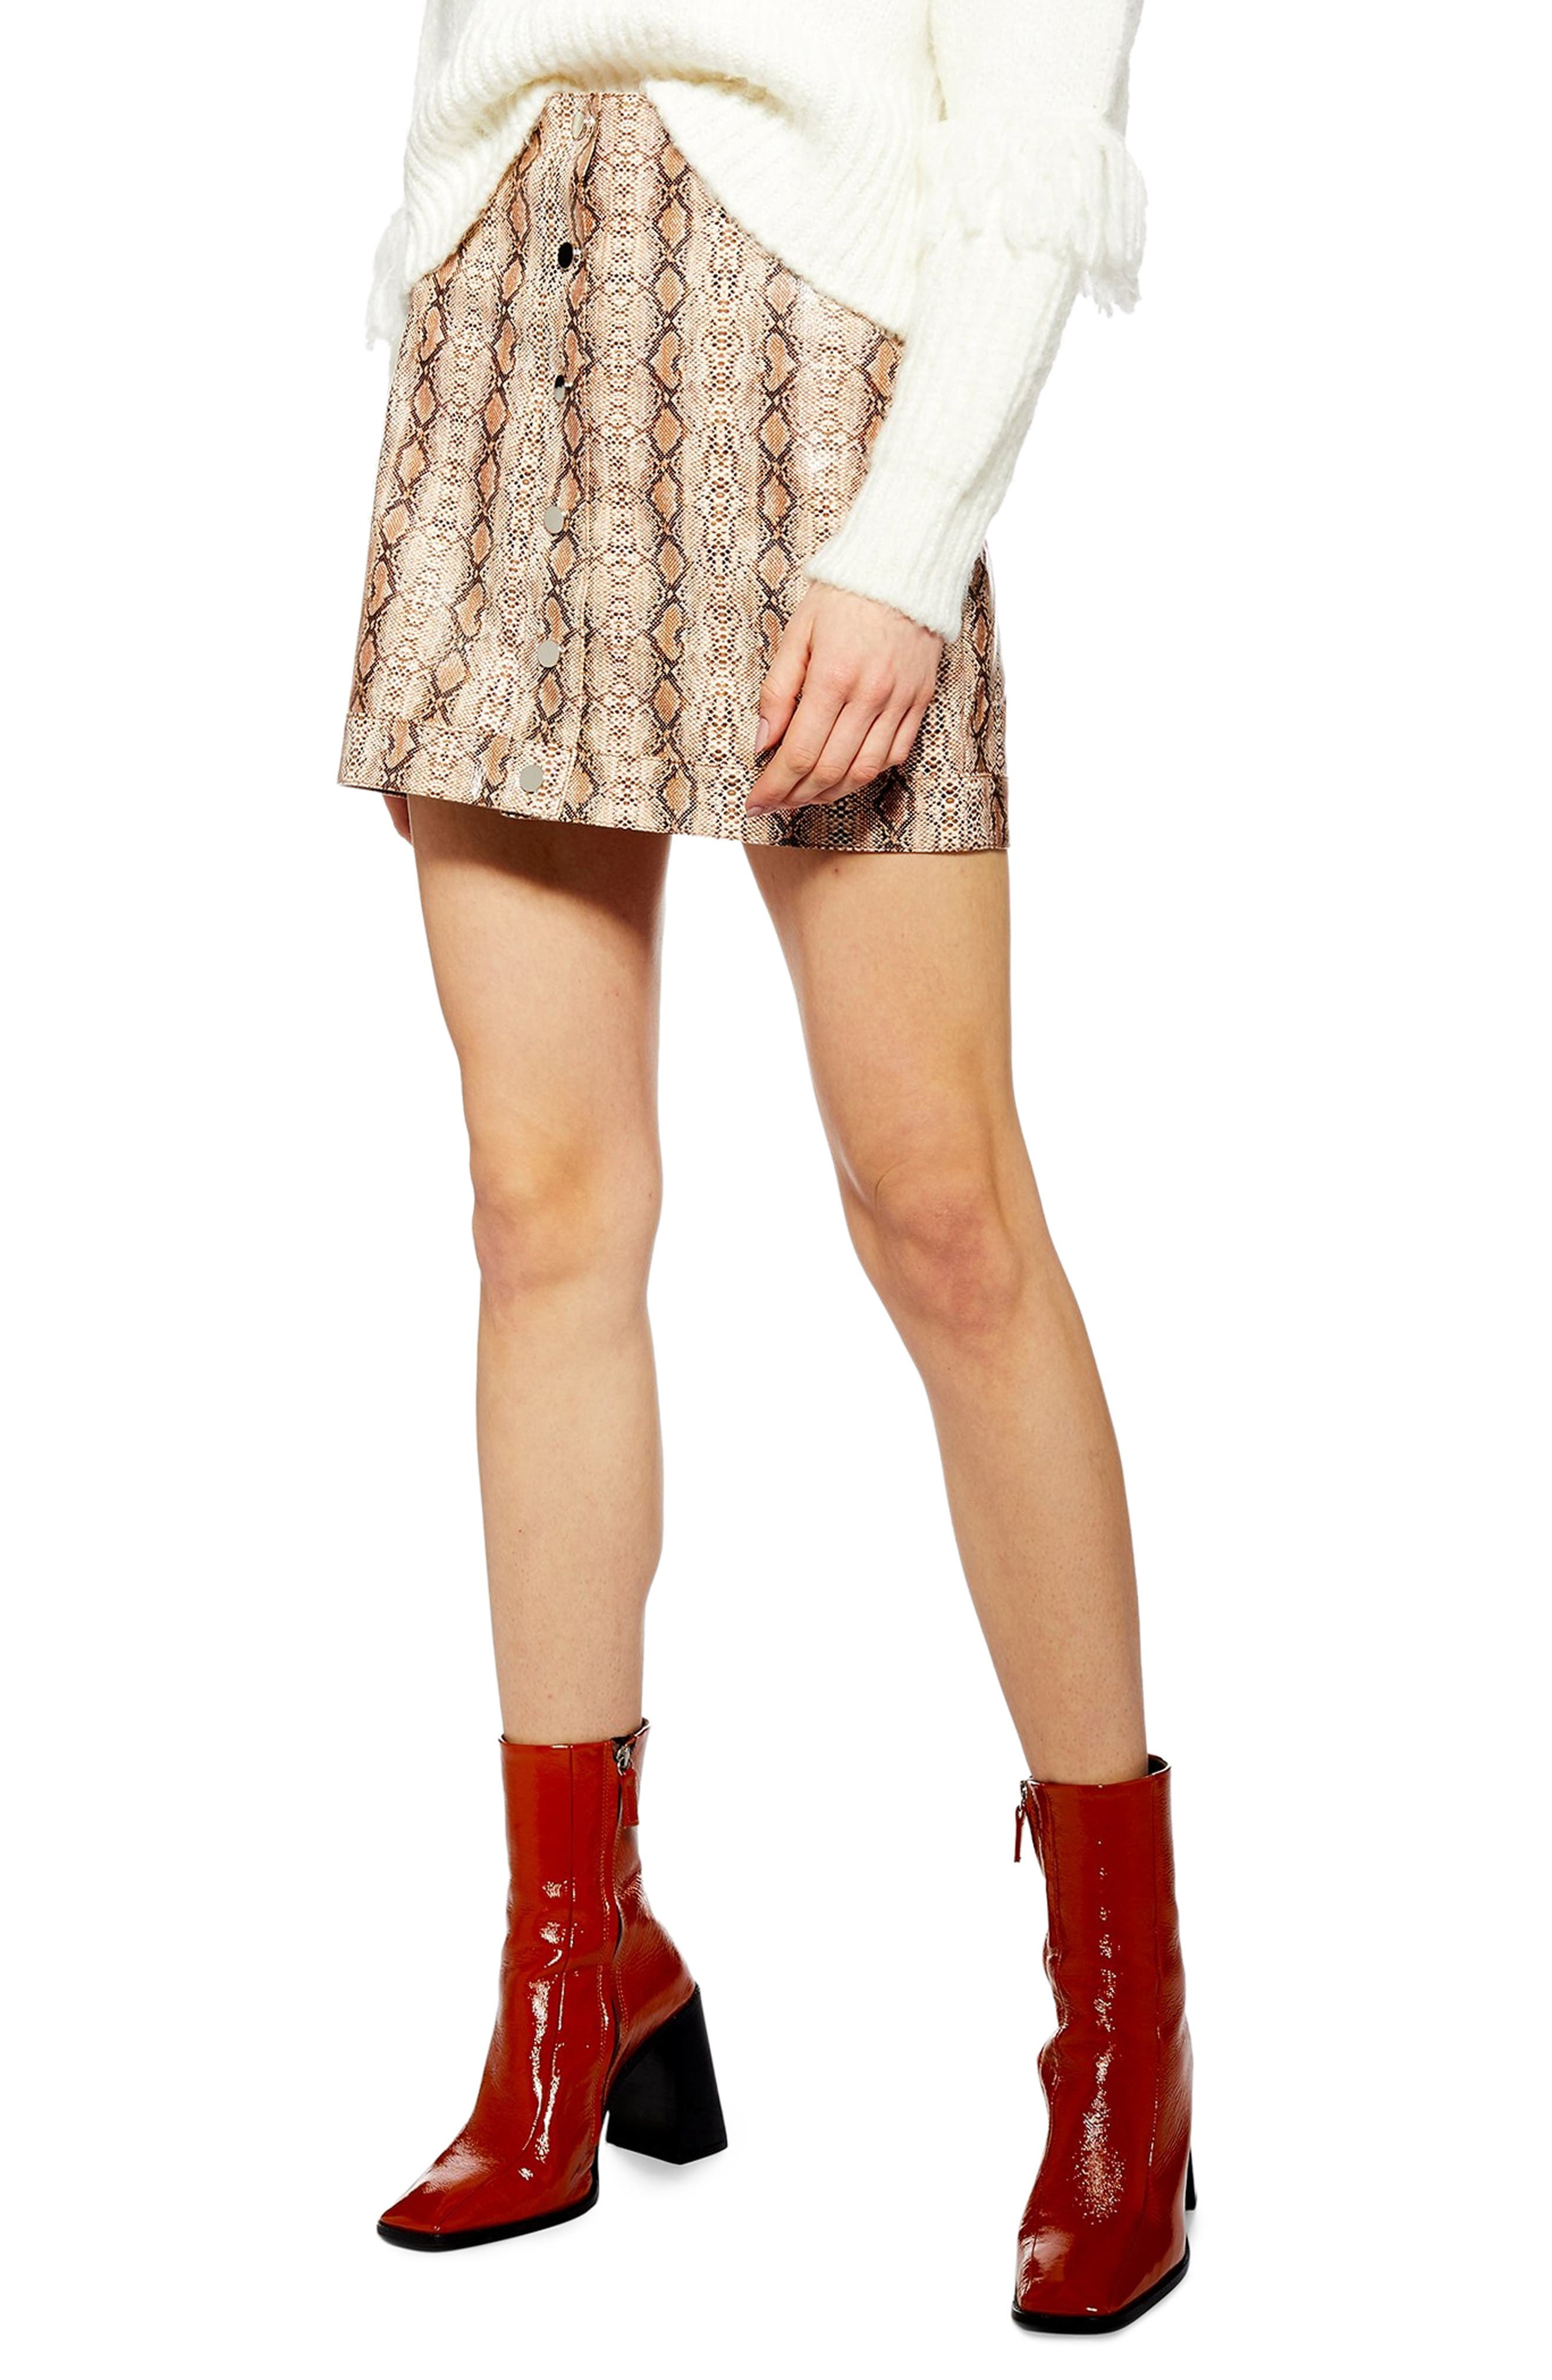 Topshop Dixie Faux Leather Miniskirt, US (fits like 0-2) - Brown